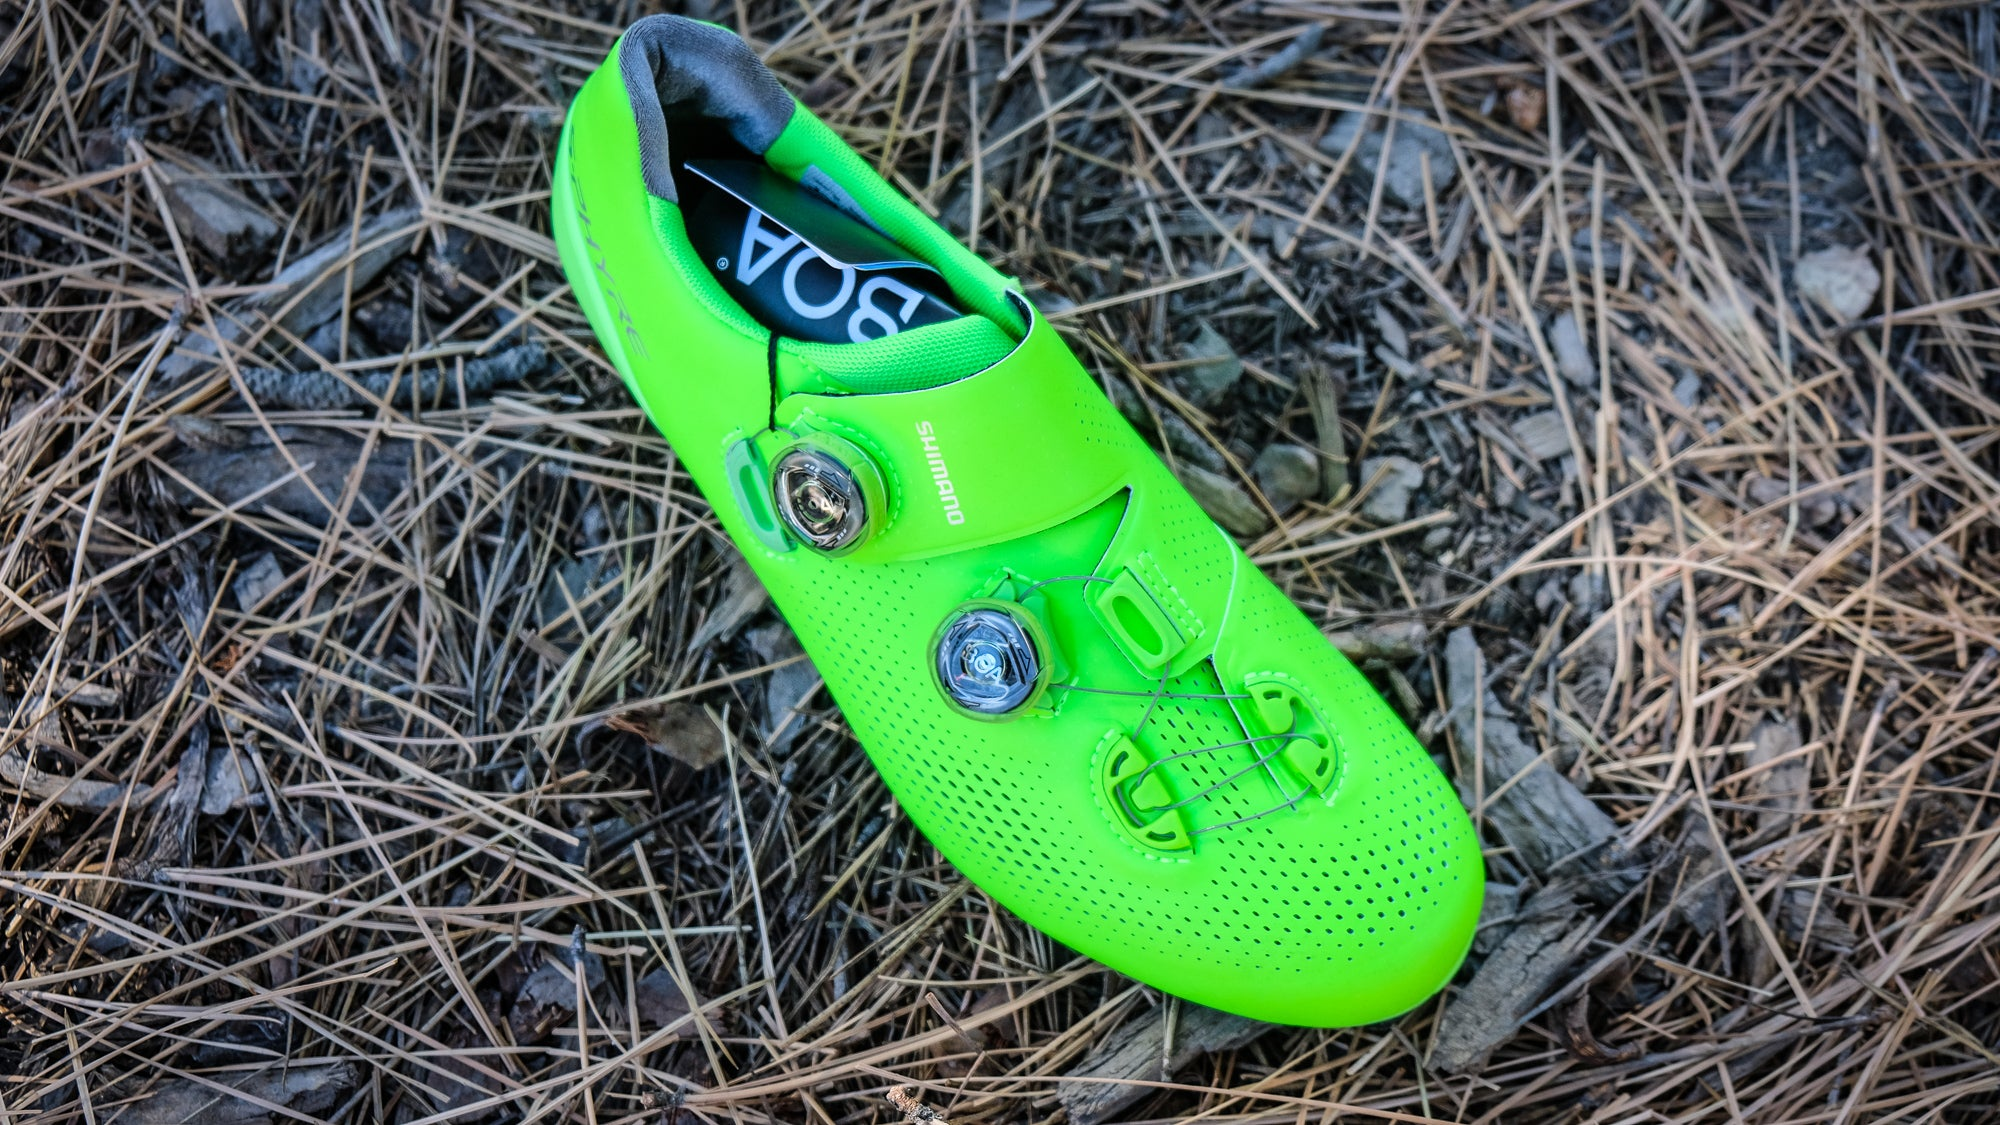 Interbike Outdoor Demo: New and notable items